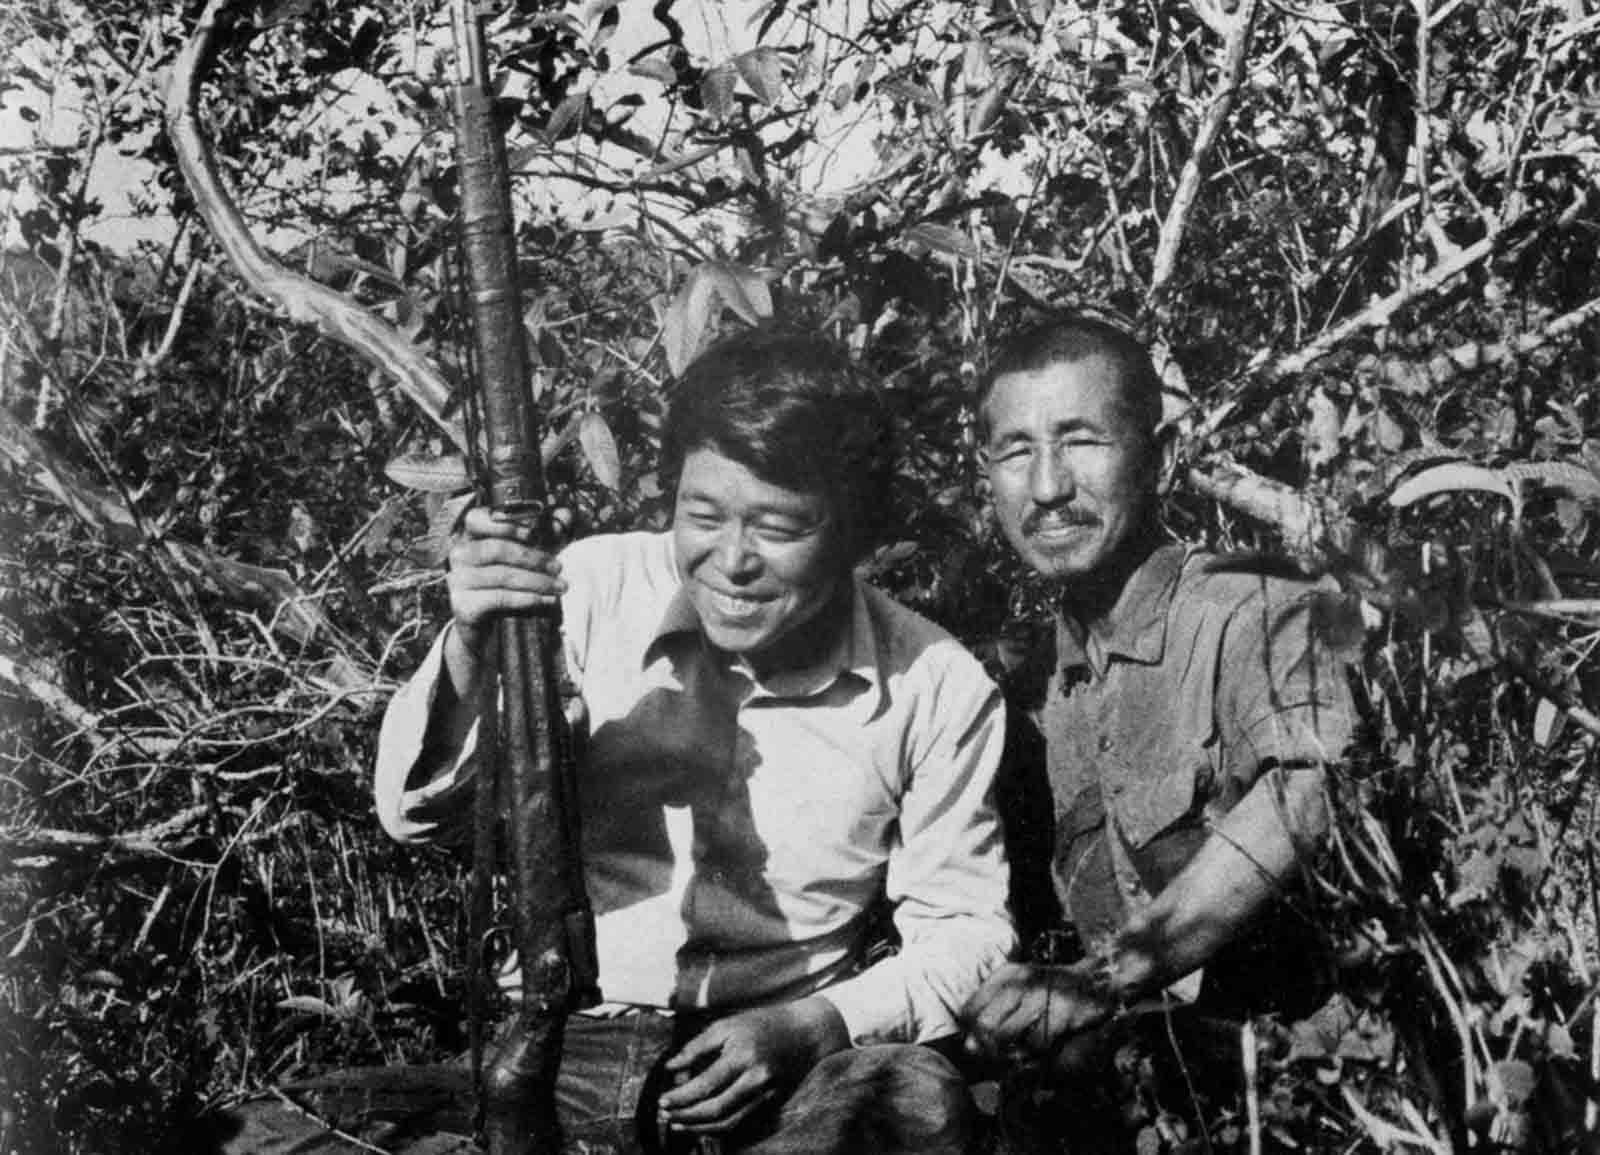 Norio Suzuki poses with Onoda and his rifle after finding him in the jungles of Lubang Island. February, 1974.